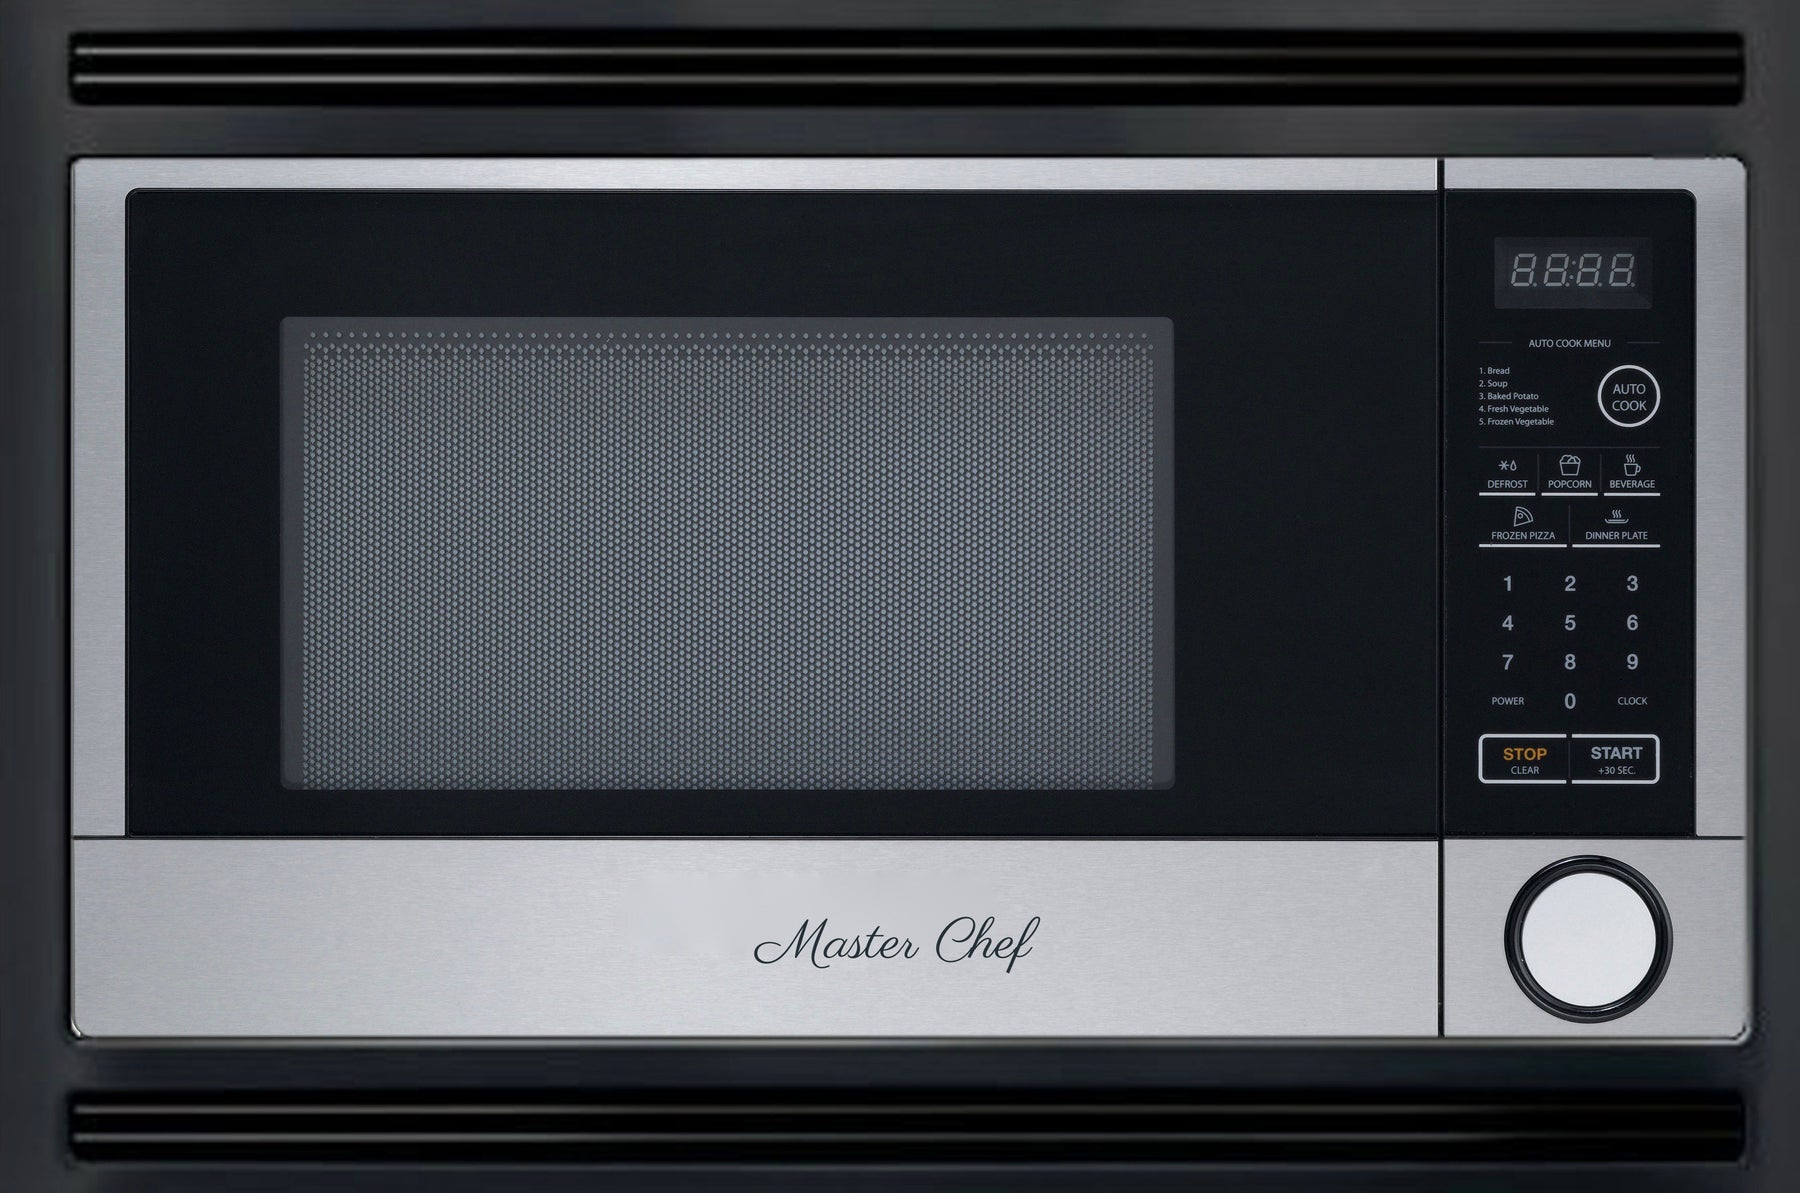 Master Chef 24 Over The Range Microwave Oven Wmetal Cabinet